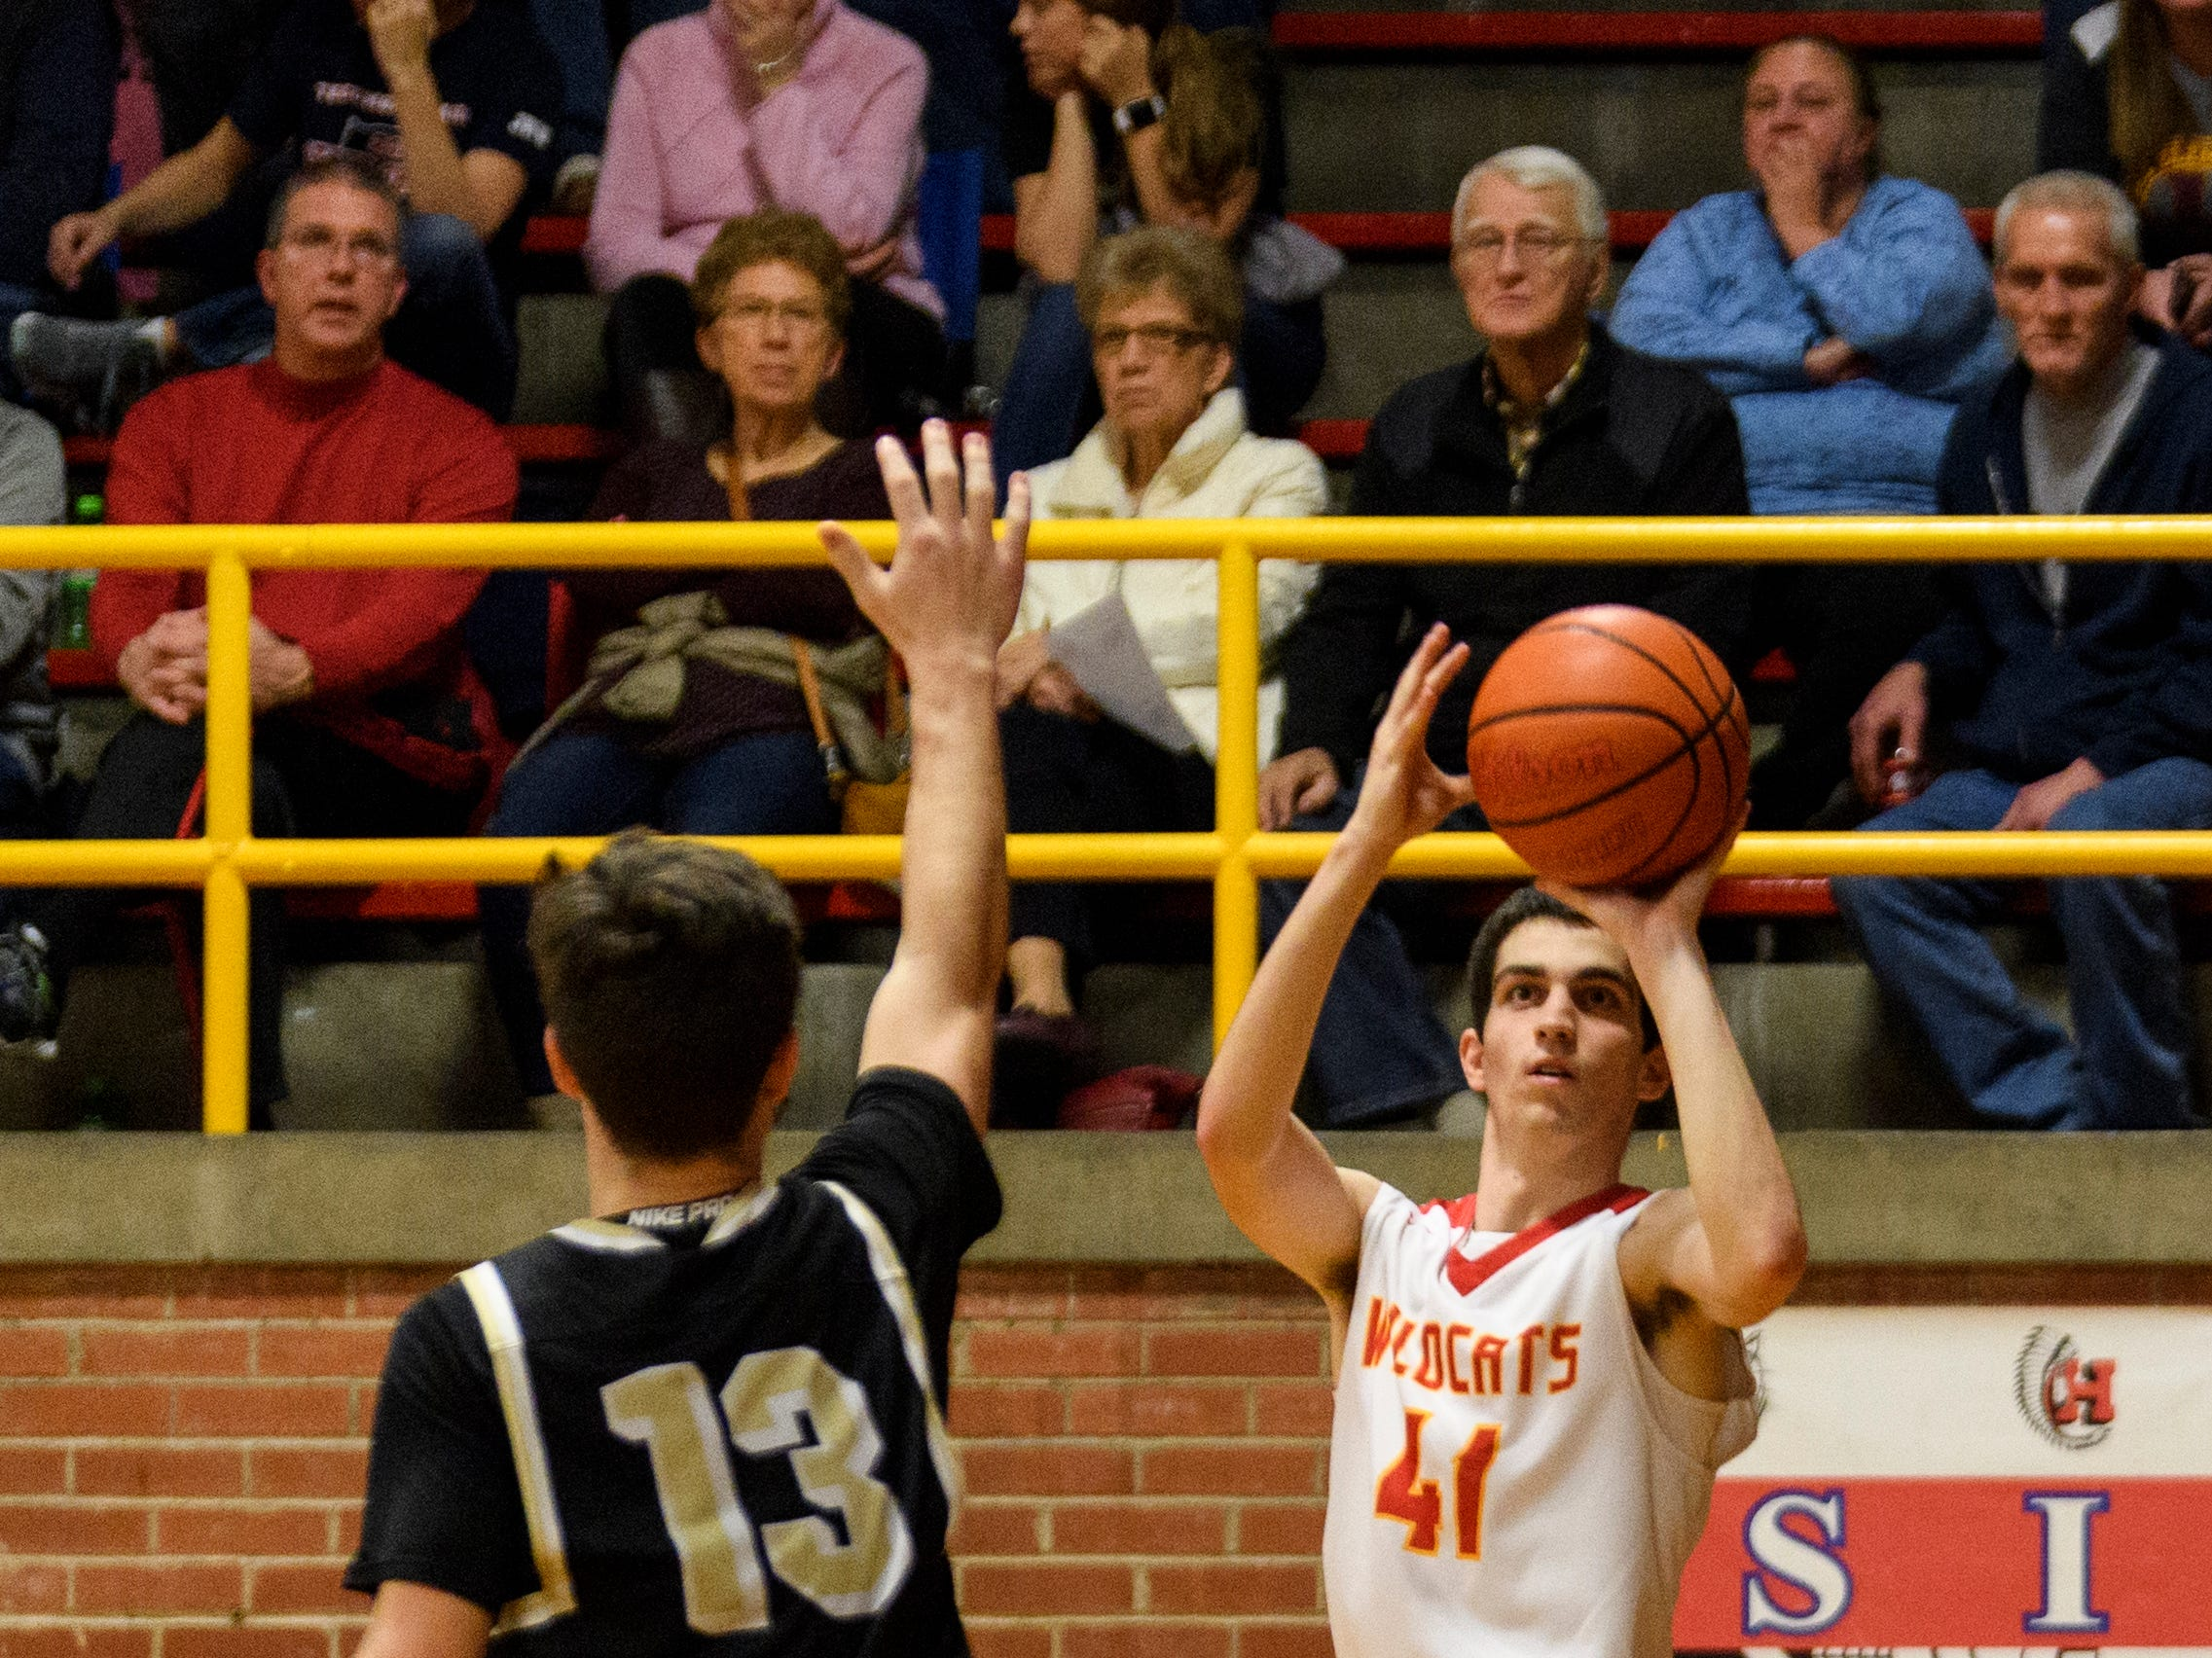 Mater Dei's Andy Heldman (41) makes a three-pointer during the second quarter against the Boonville Pioneers at Mater Dei High School in Evansville, Ind., Saturday, Jan. 5, 2019. The Wildcats defeated the Pioneers, 93-65.